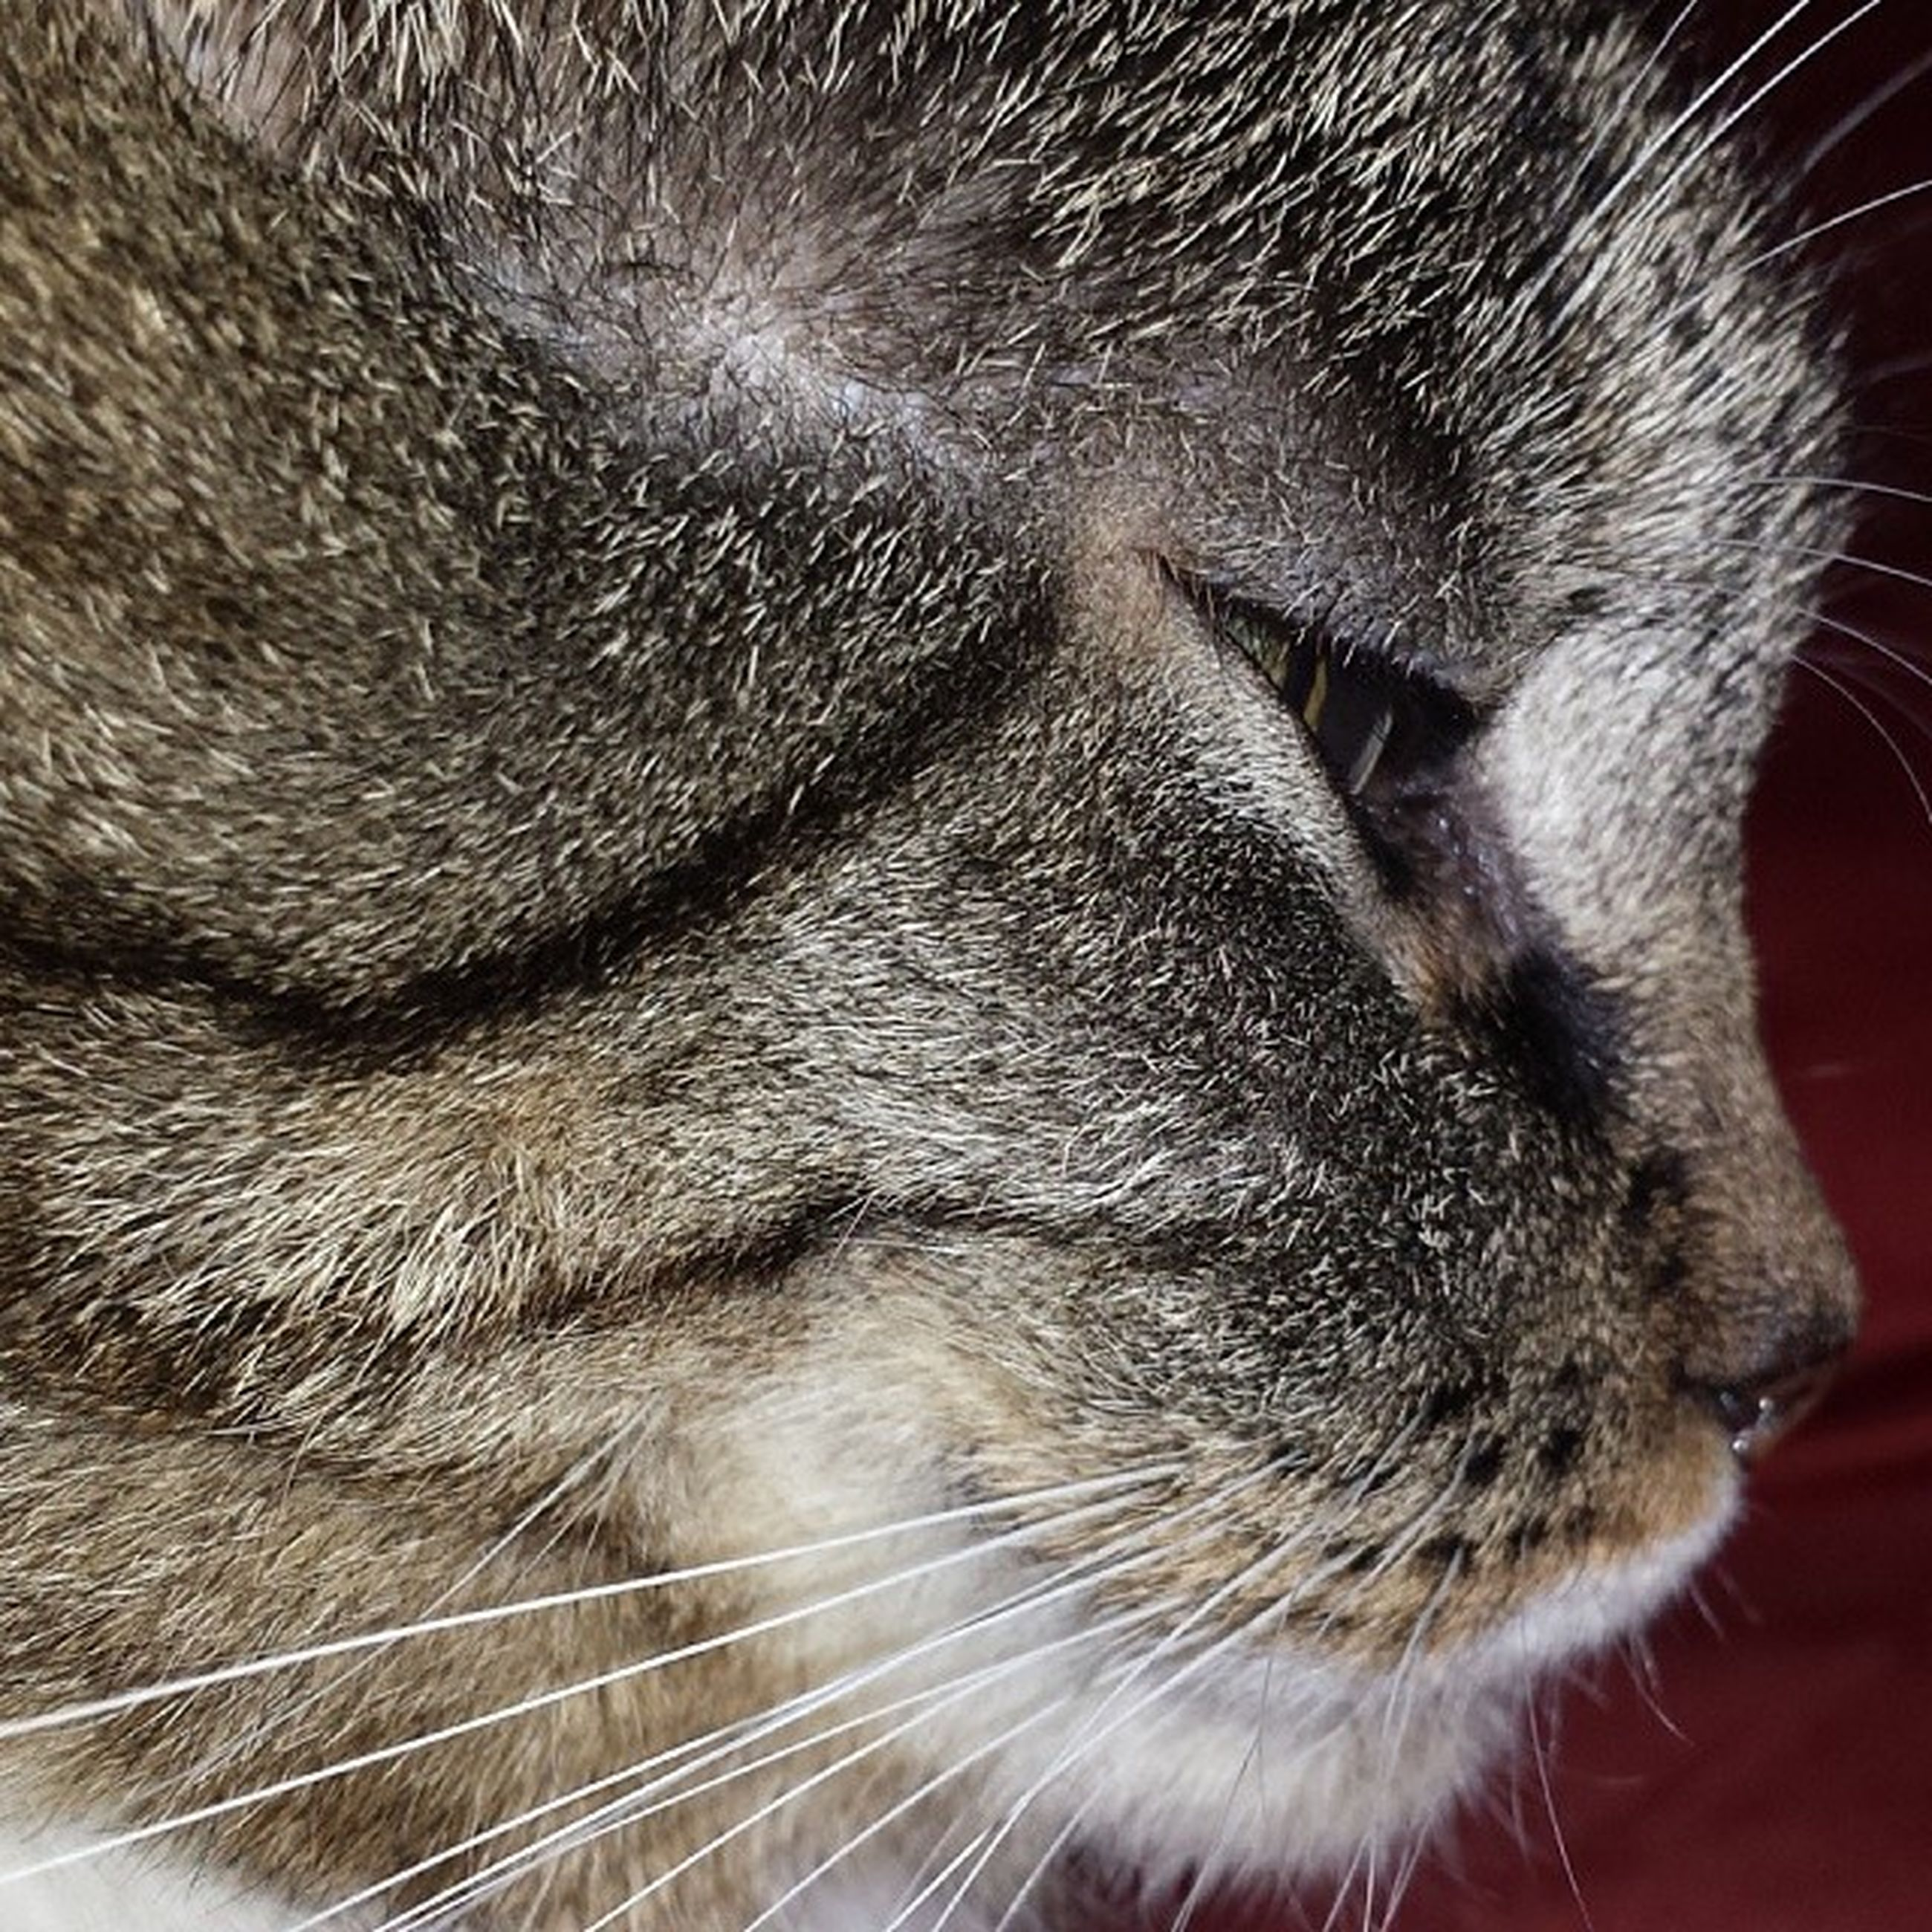 animal themes, one animal, domestic animals, mammal, pets, domestic cat, cat, whisker, feline, animal head, close-up, animal body part, indoors, animal hair, part of, animal eye, zoology, looking away, animal, no people